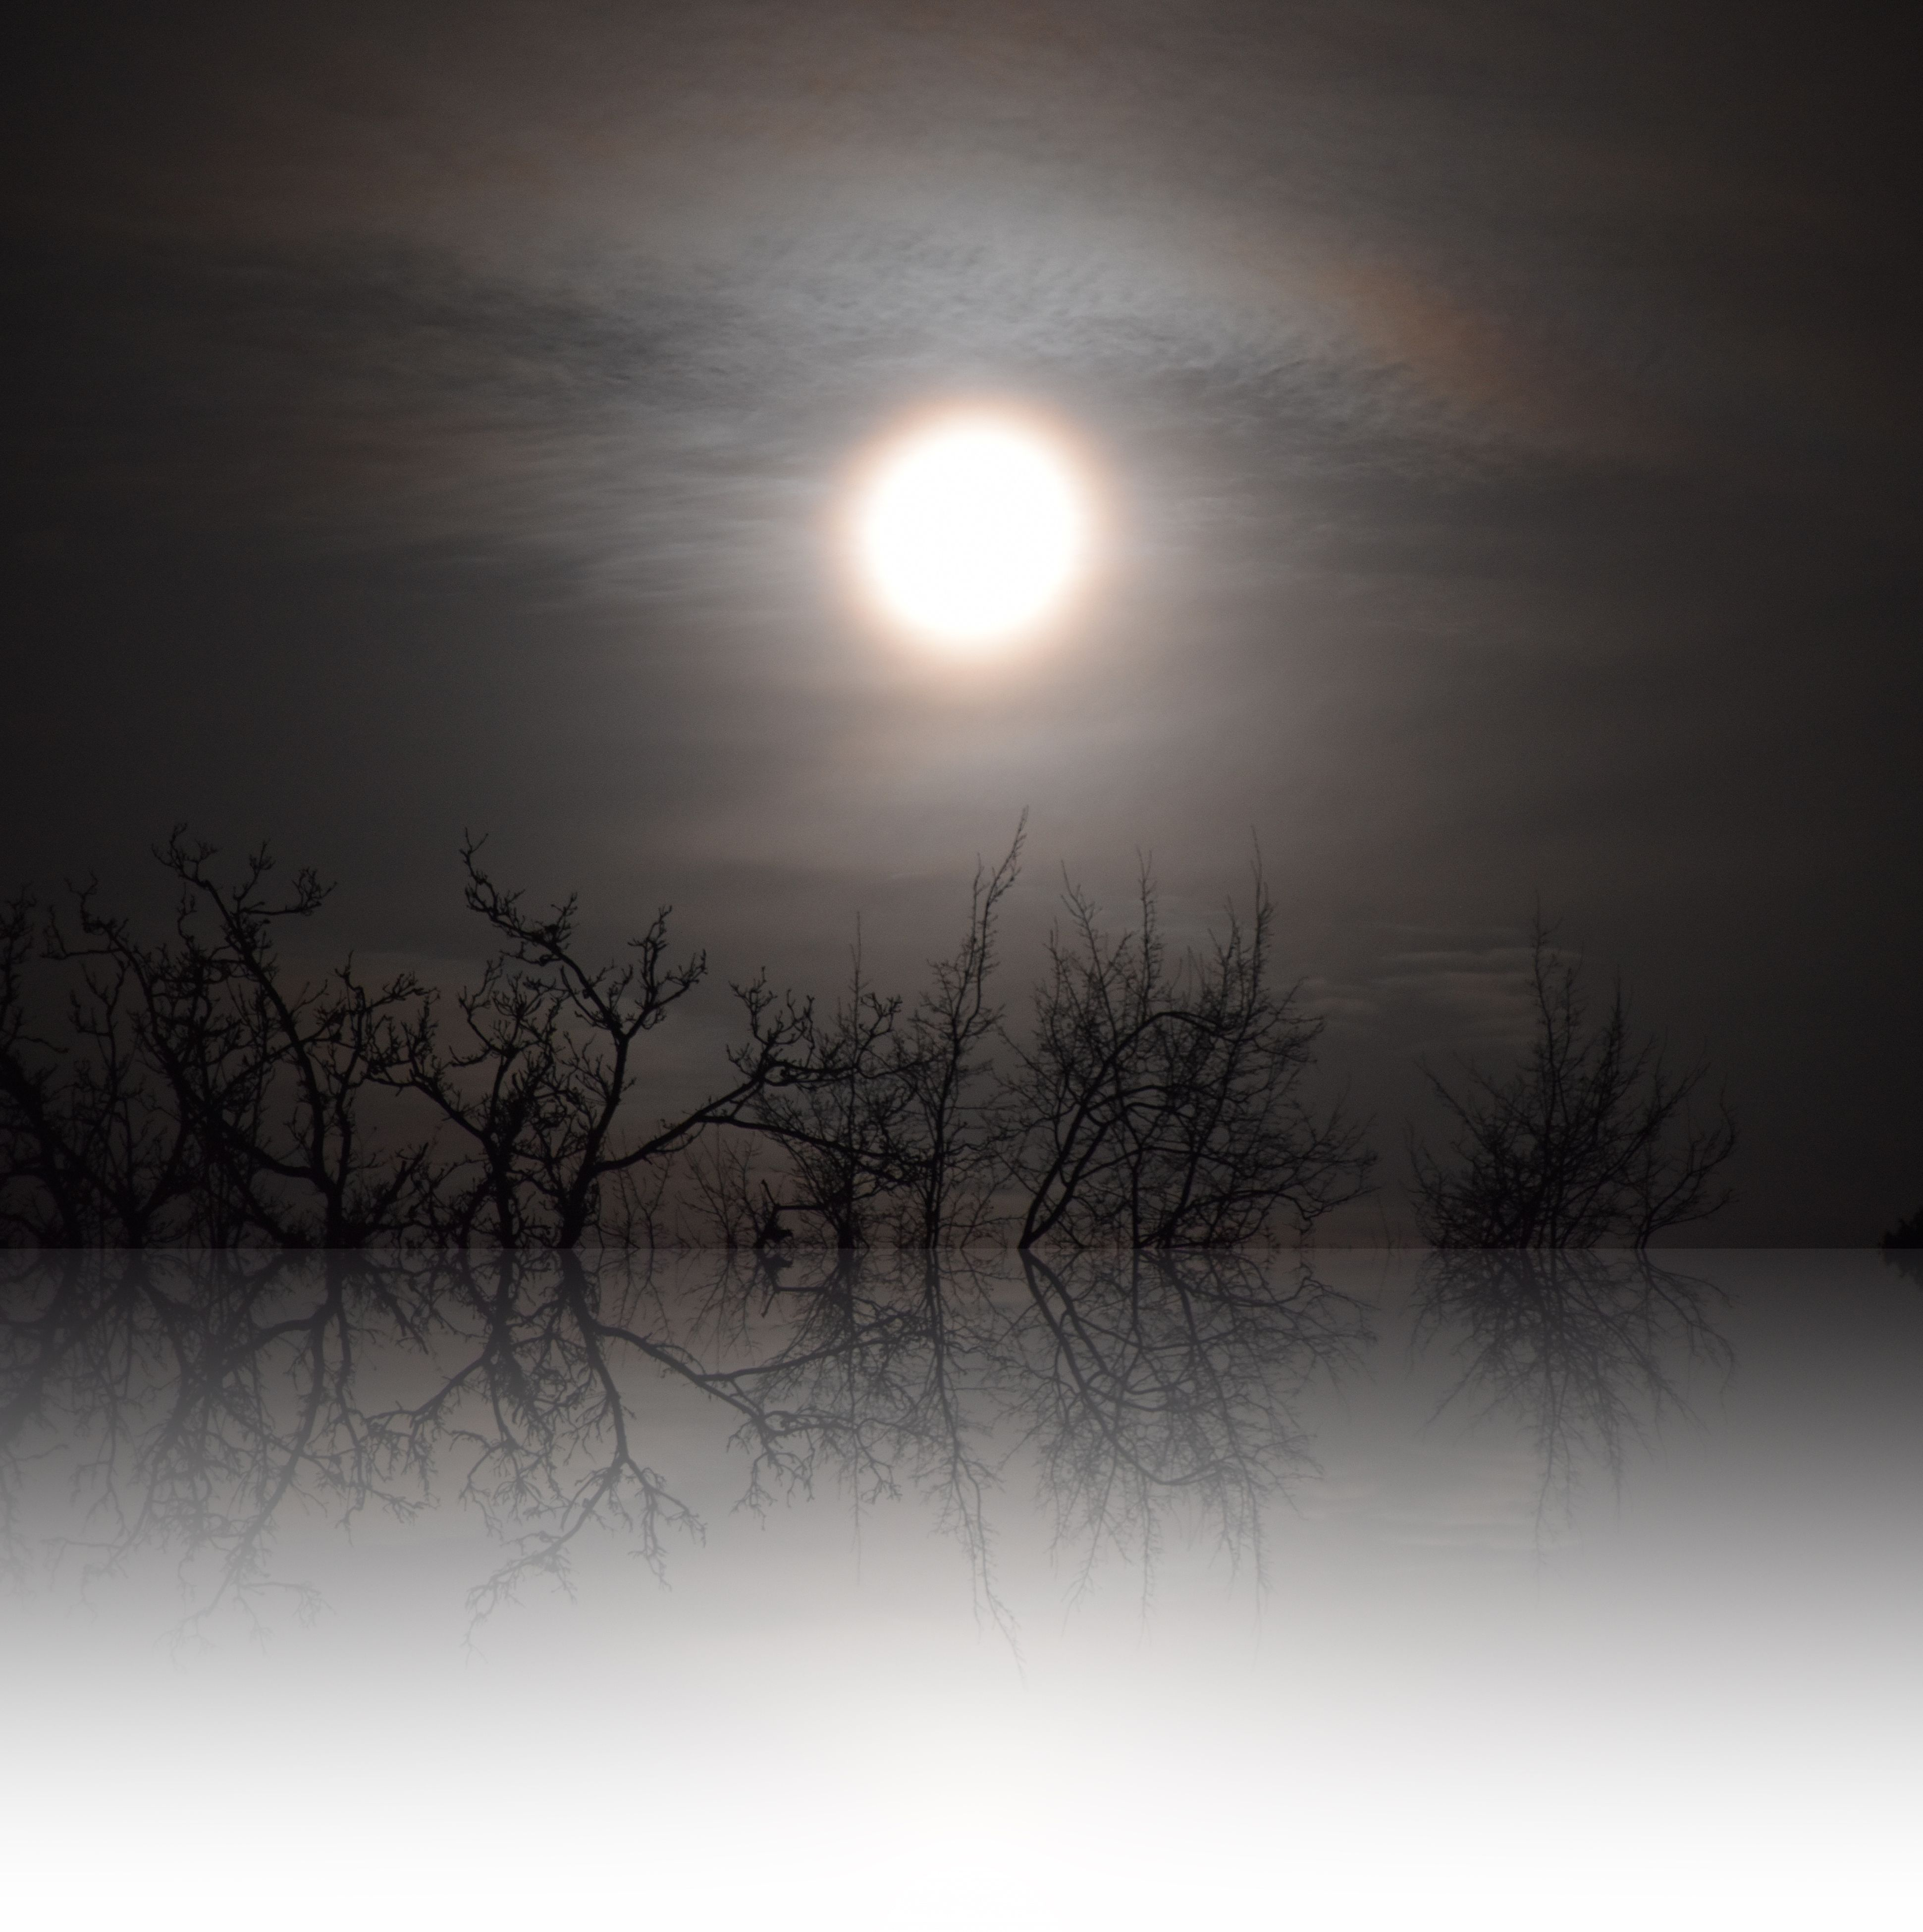 sun, moon, beauty in nature, nature, tranquility, tranquil scene, scenics, outdoors, idyllic, no people, sky, reflection, bare tree, sunset, moonlight, tree, astronomy